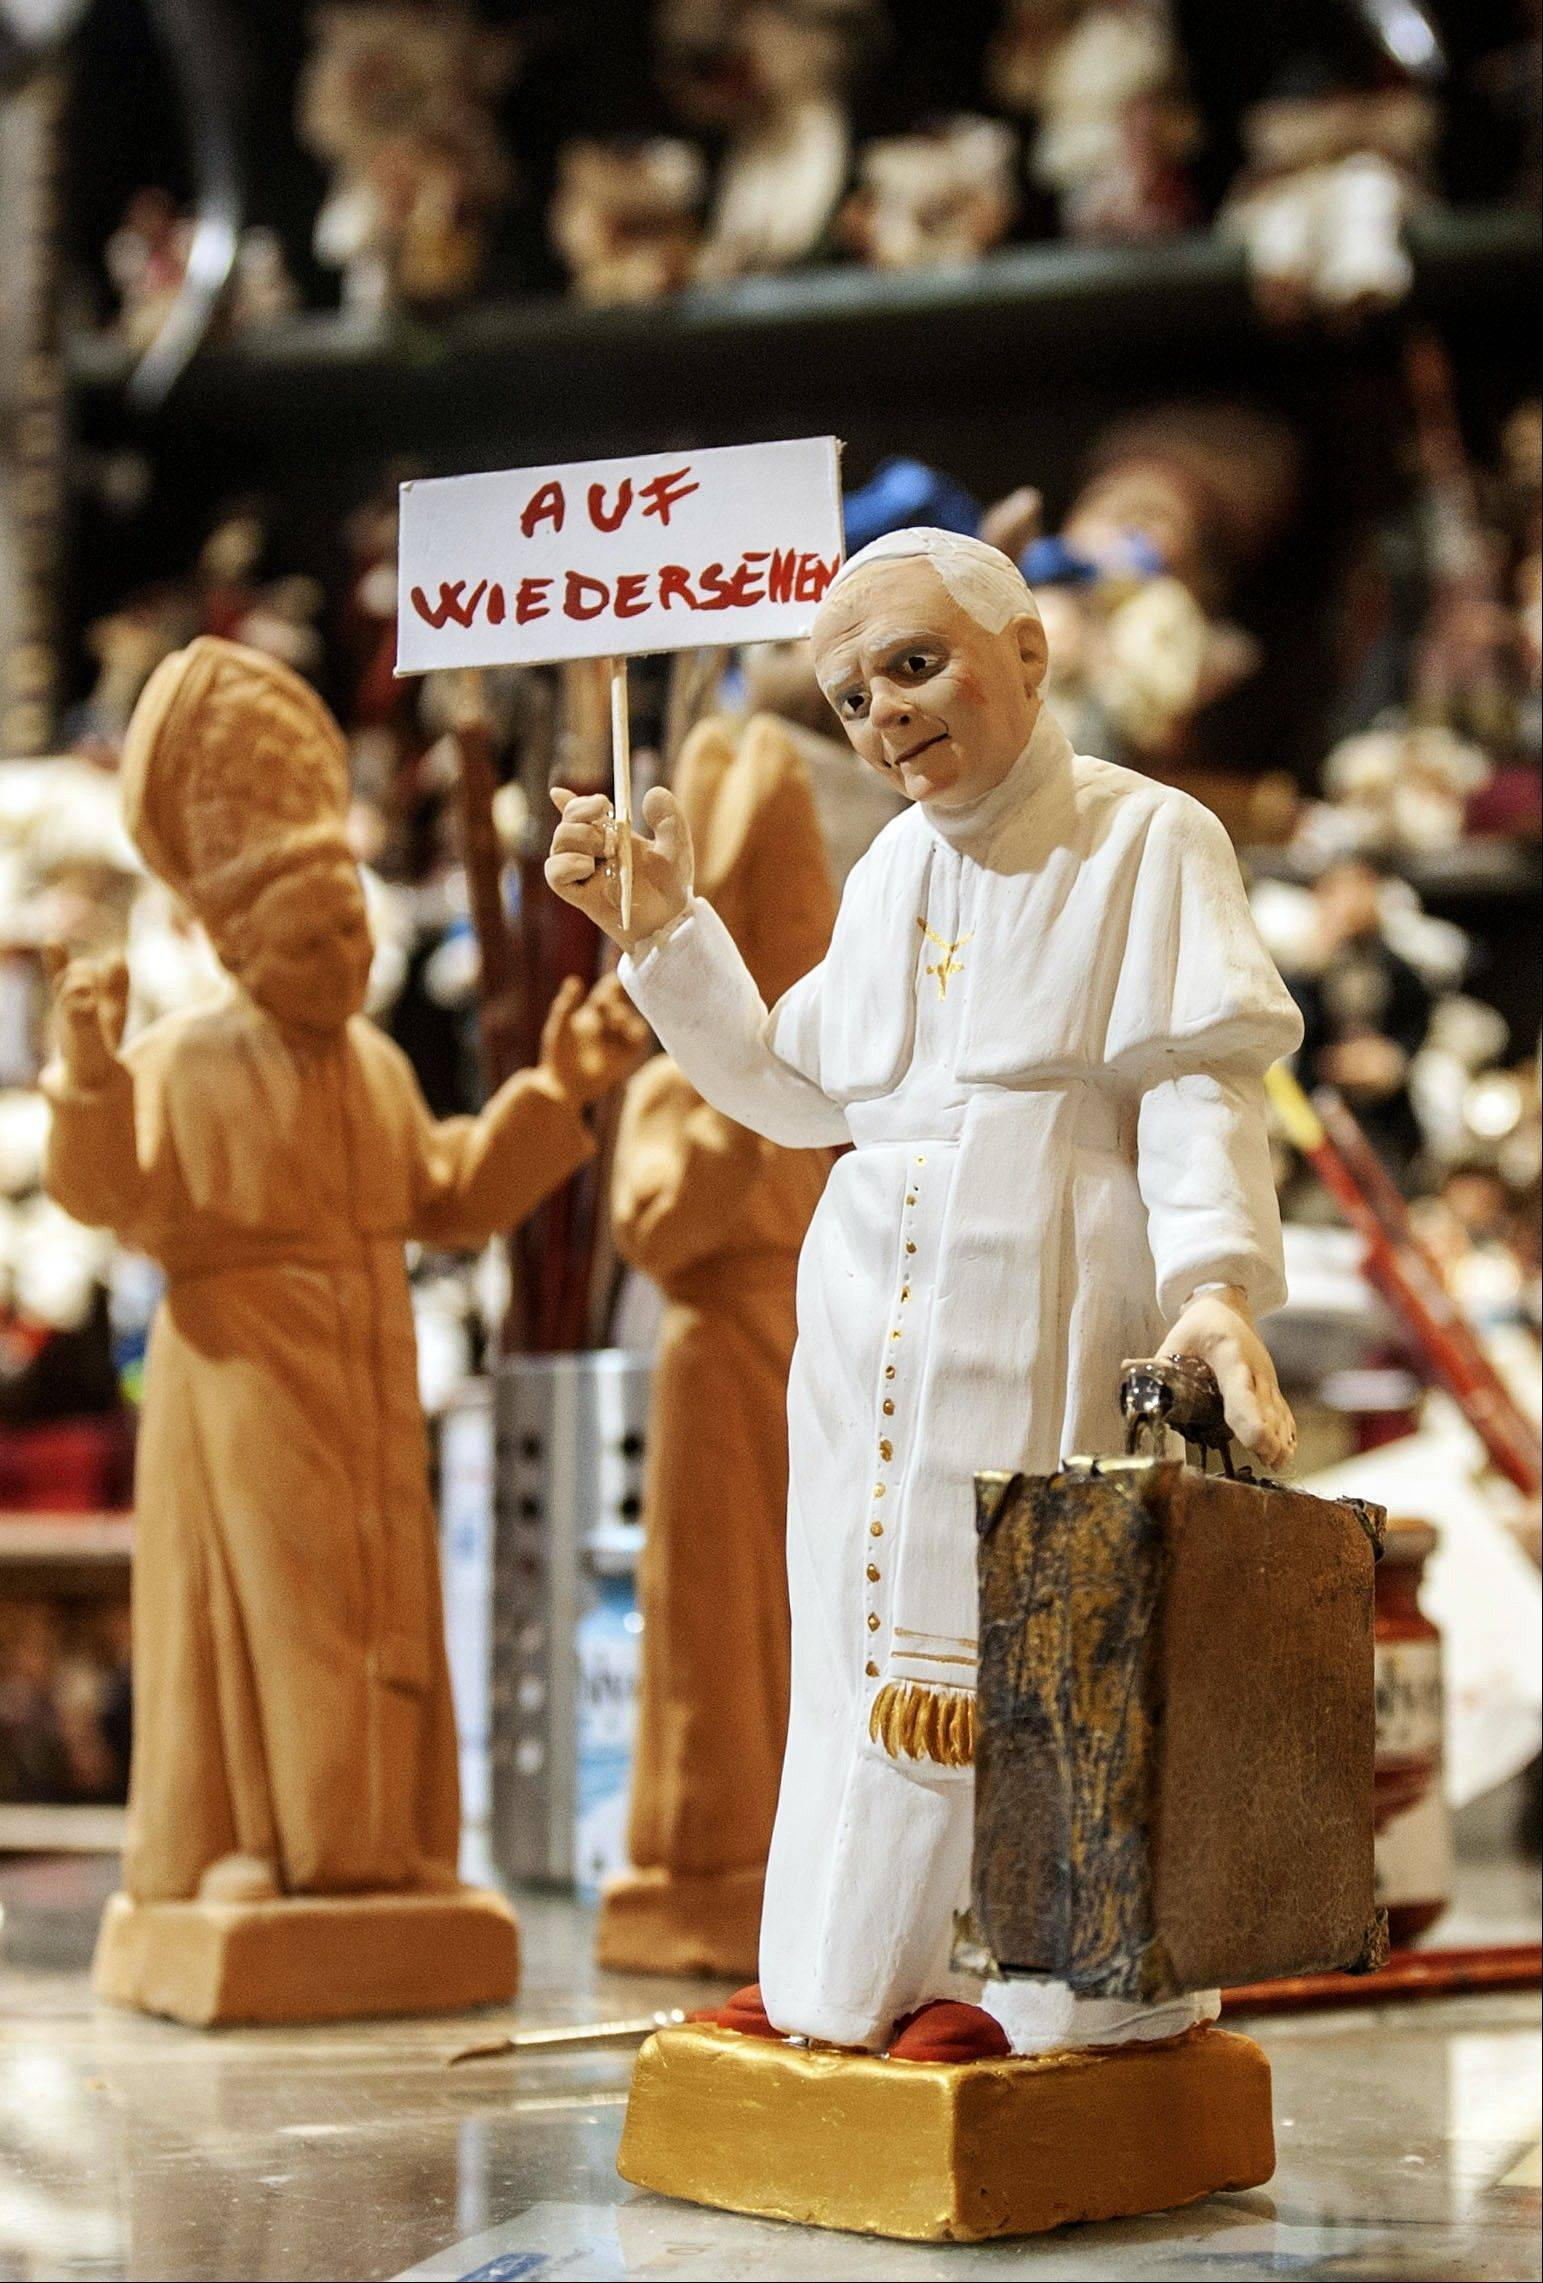 A statuette depicting Pope Benedict XVI carrying a suitcase and holding up a sign reading in German �Auf Wiedersehen� (goodbye), is seen in a shop in Naples, Italy, Feb. 12, 2013. Benedict XVI on Monday announced that he will resign on Feb. 28 � the first pontiff to do so in nearly 600 years.